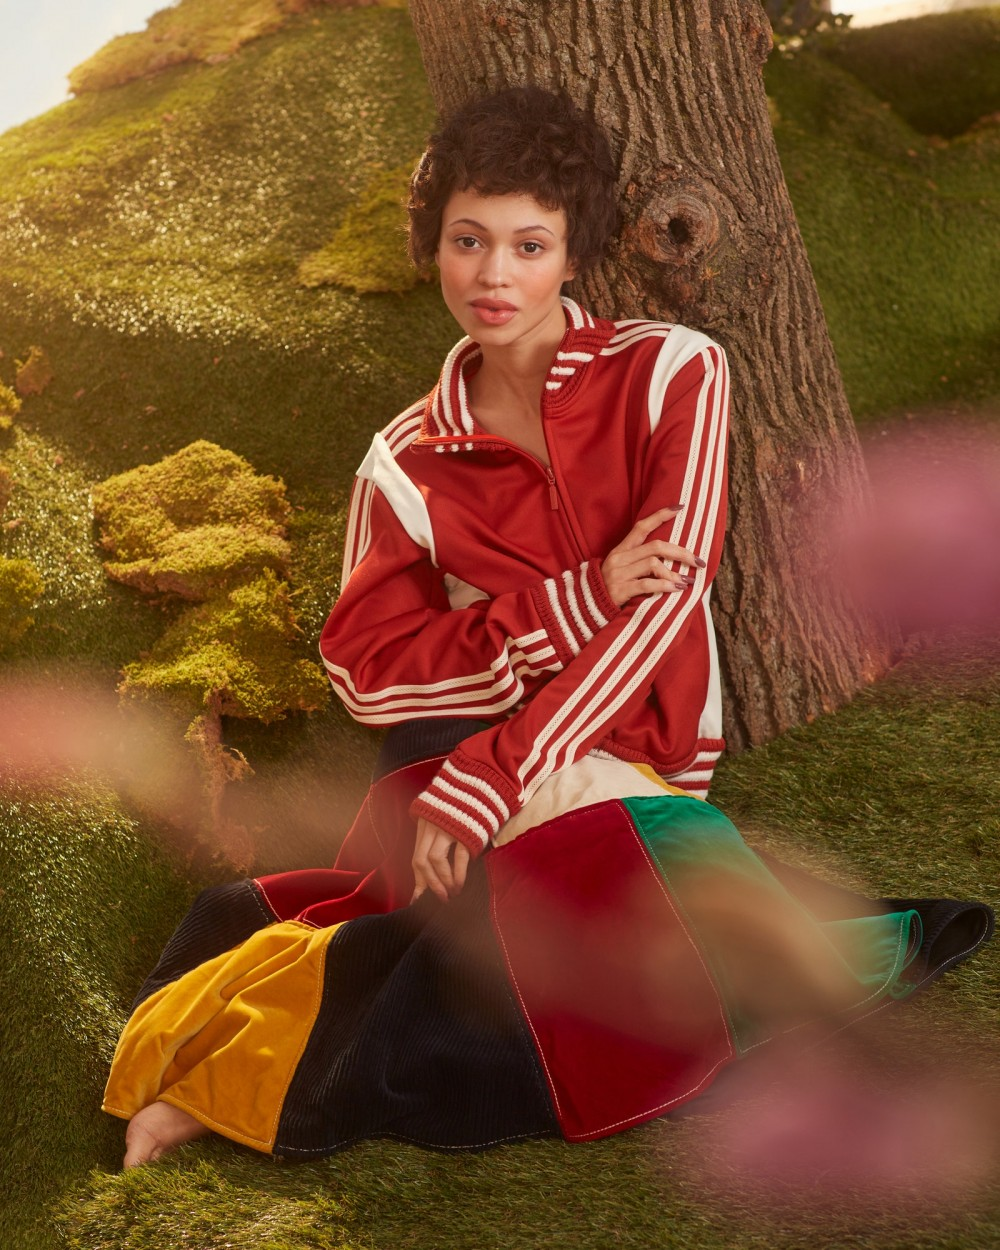 Eloisa in Wales Bonner X Adidas jacket and Wales Bonner skirt.